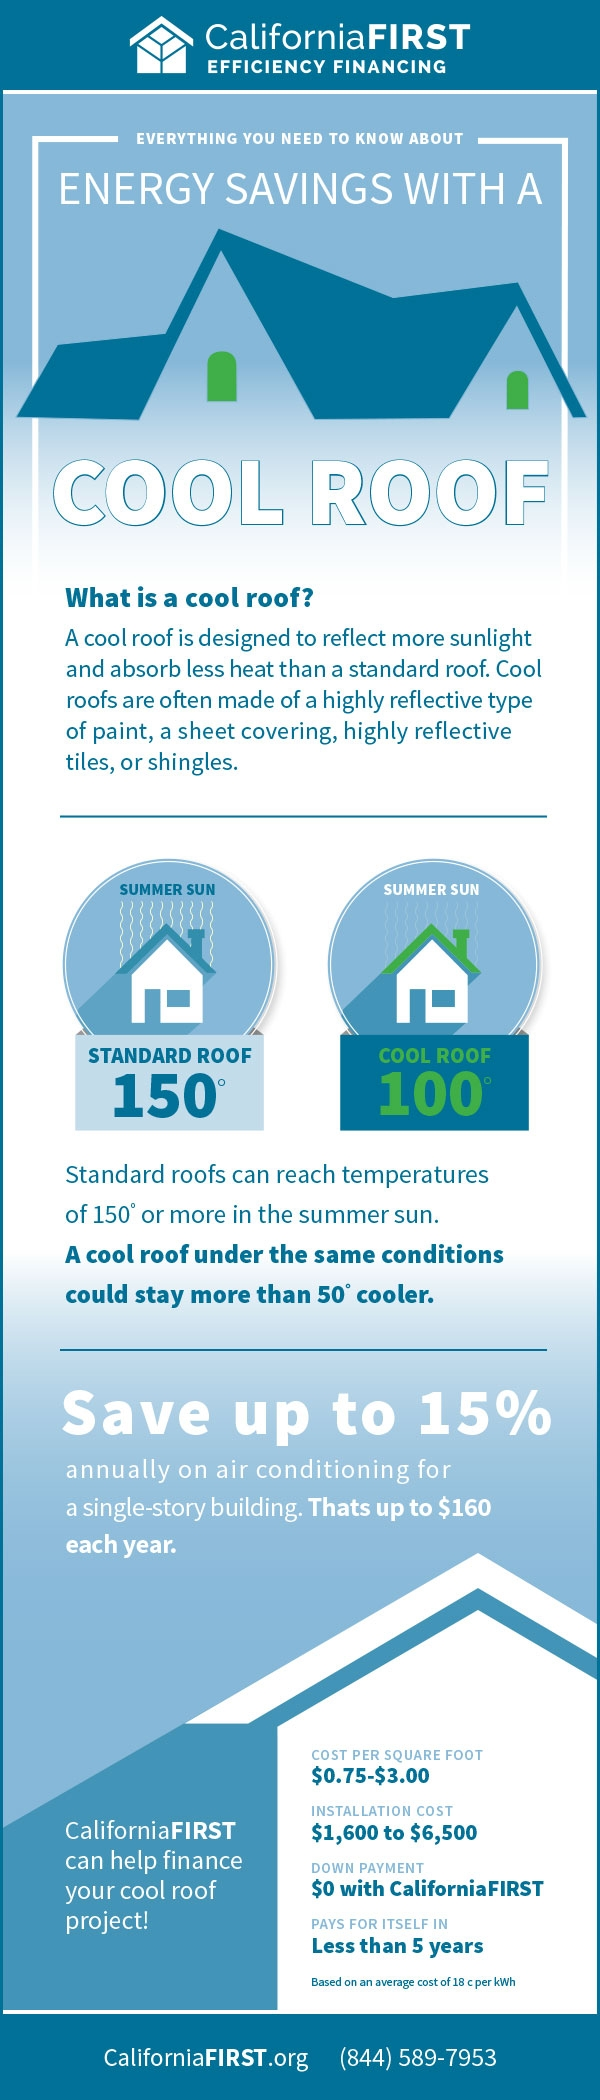 CaliforniaFIRST Cool Roof Infographic